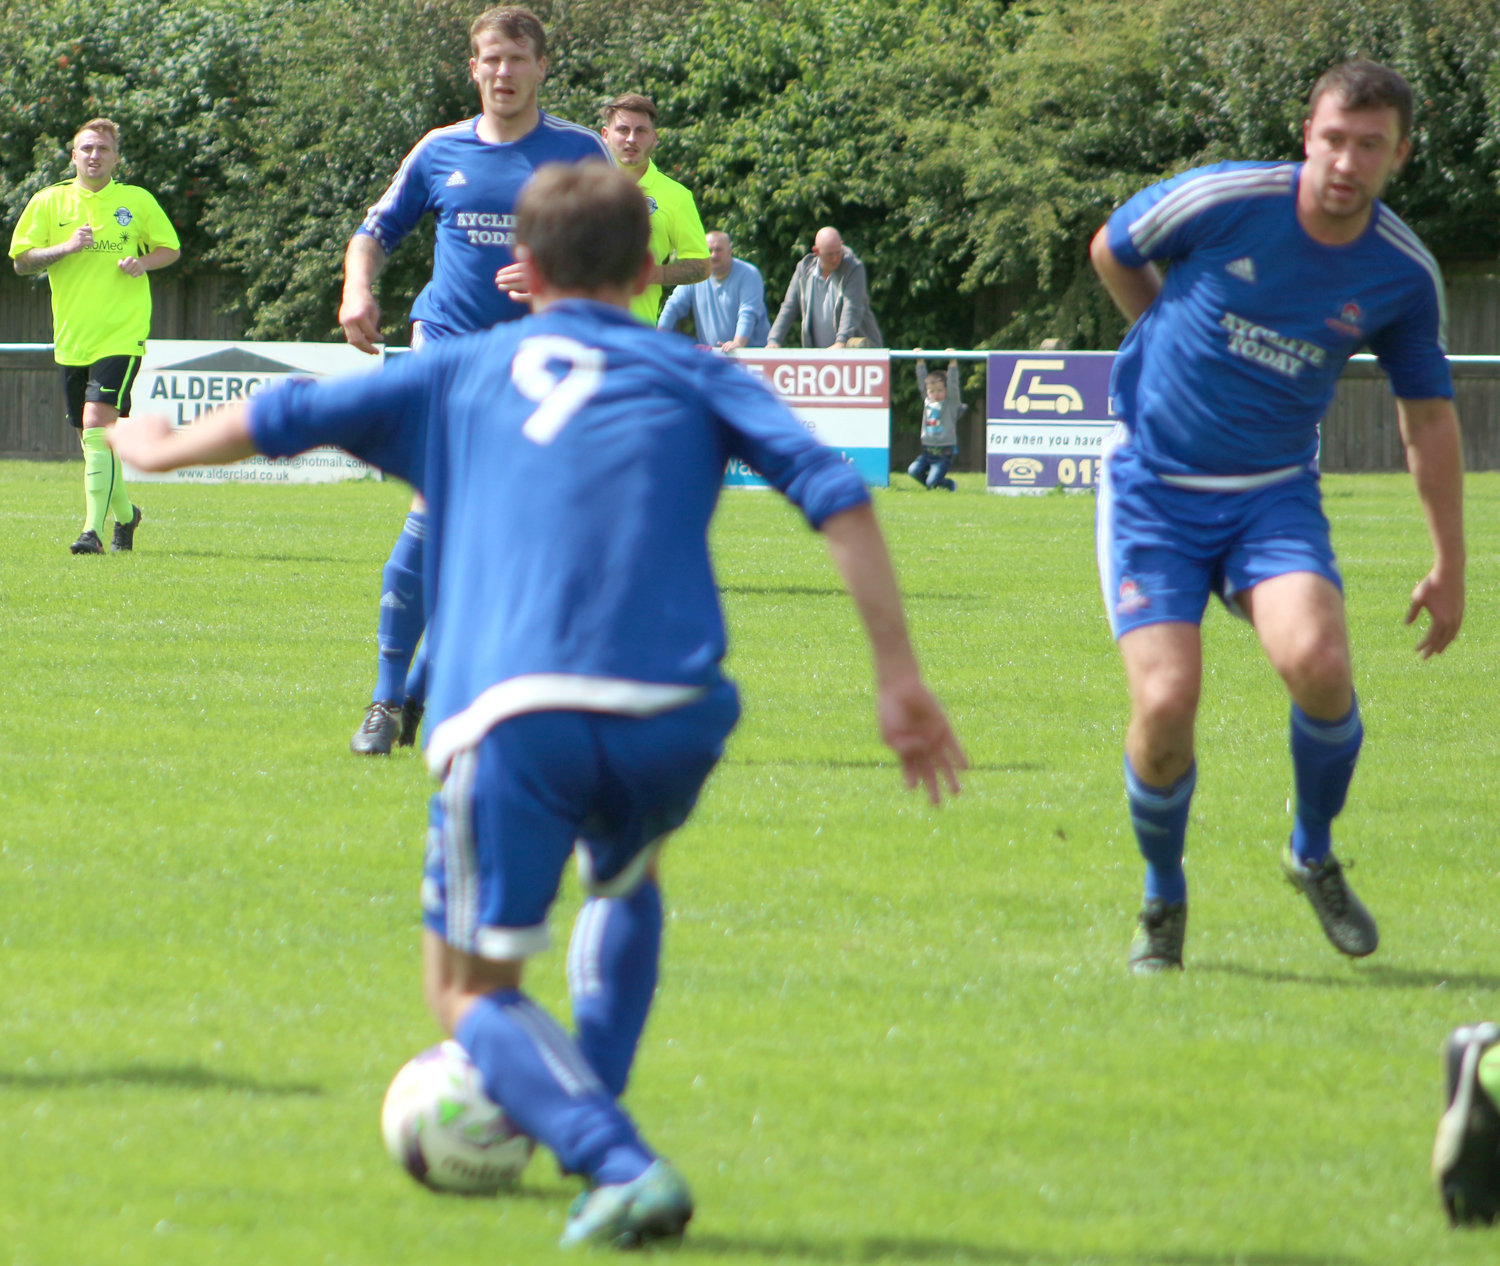 Strong Pre-Season Training by Aycliffe FC